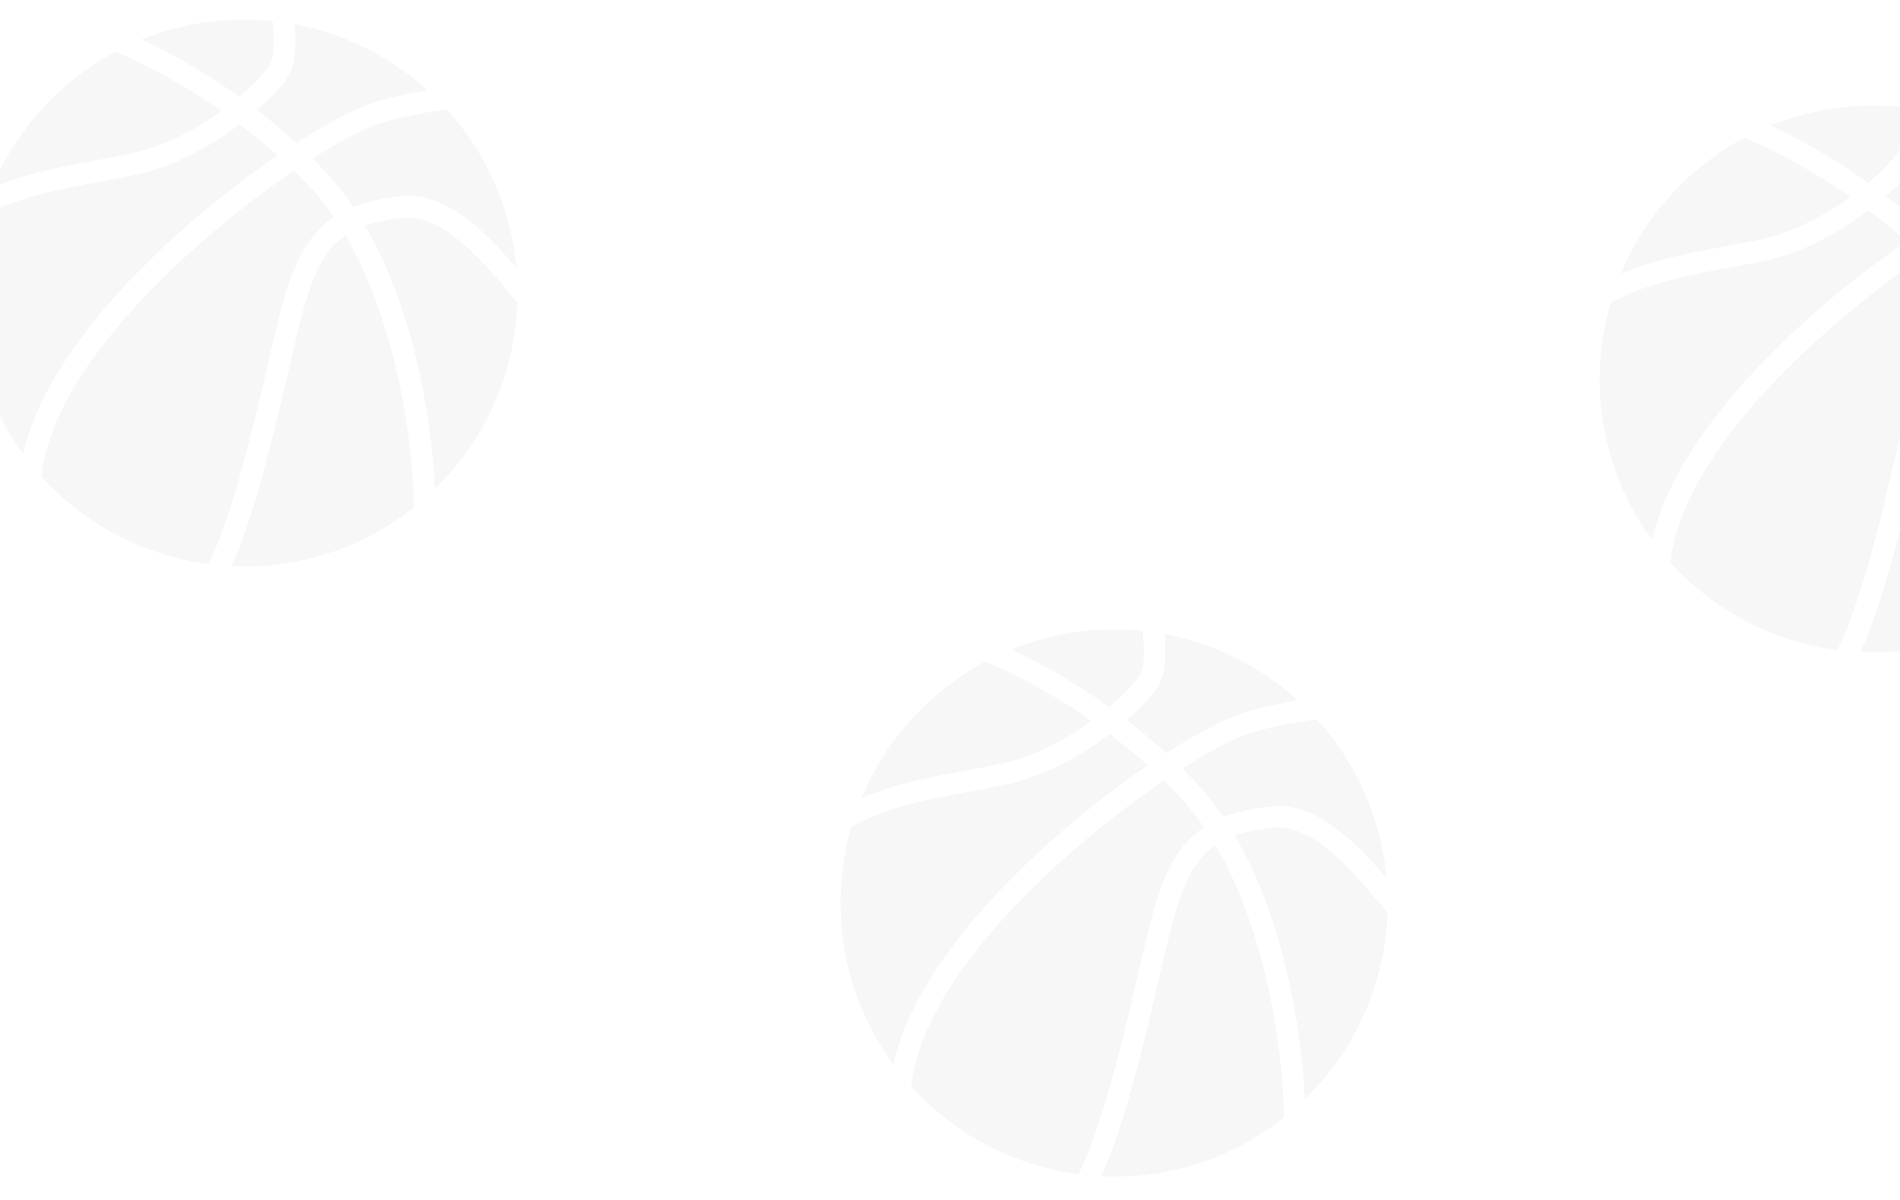 gray basketball background - Home